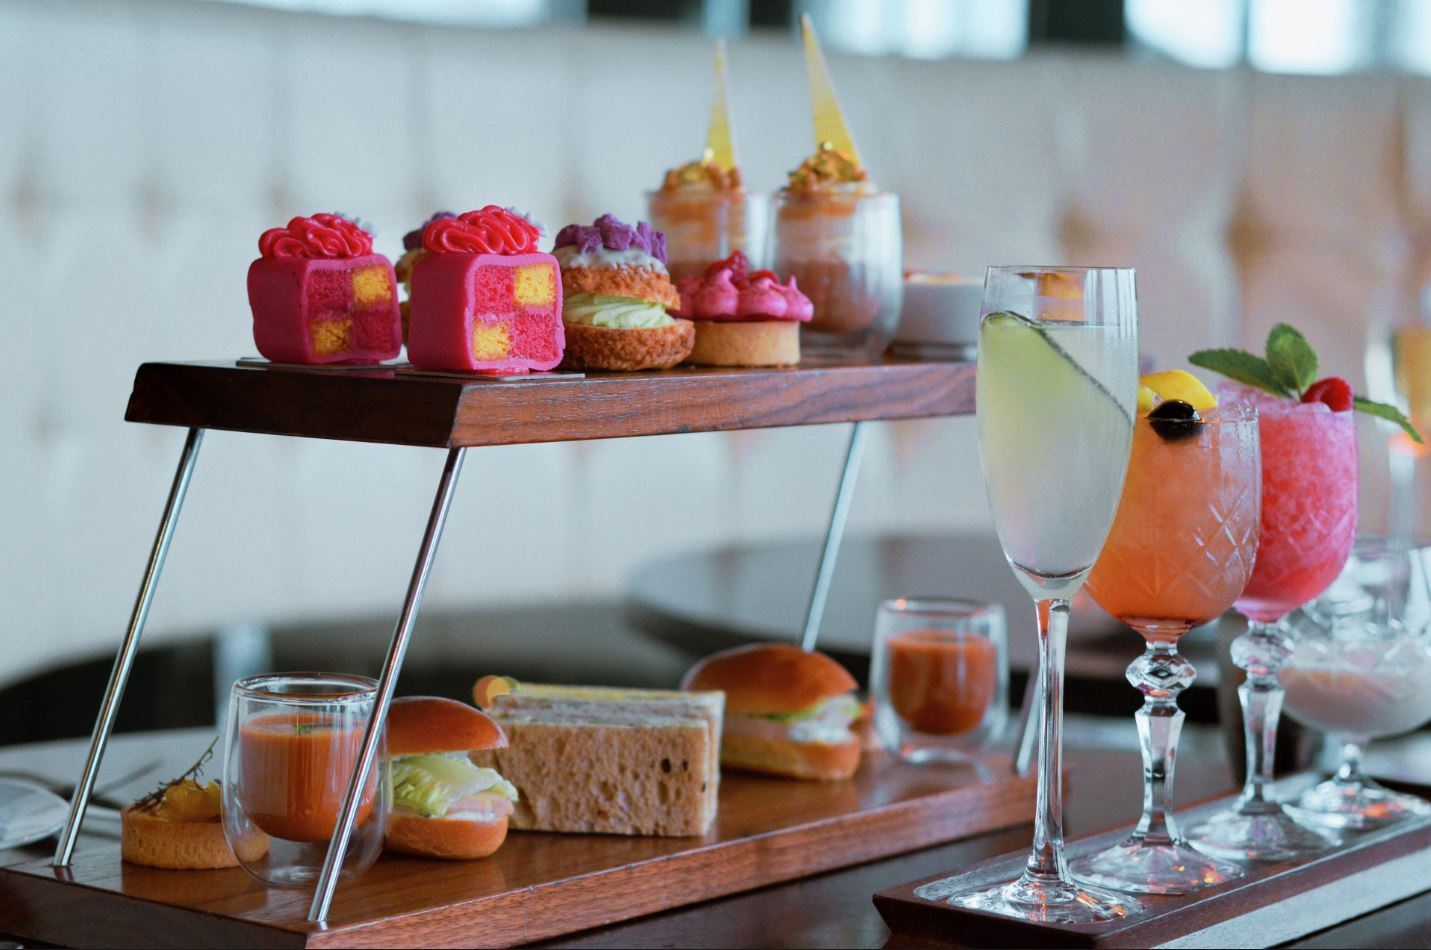 AFTERNOON TEA REVIEW: MANCHESTER HOUSE, MANCHESTER